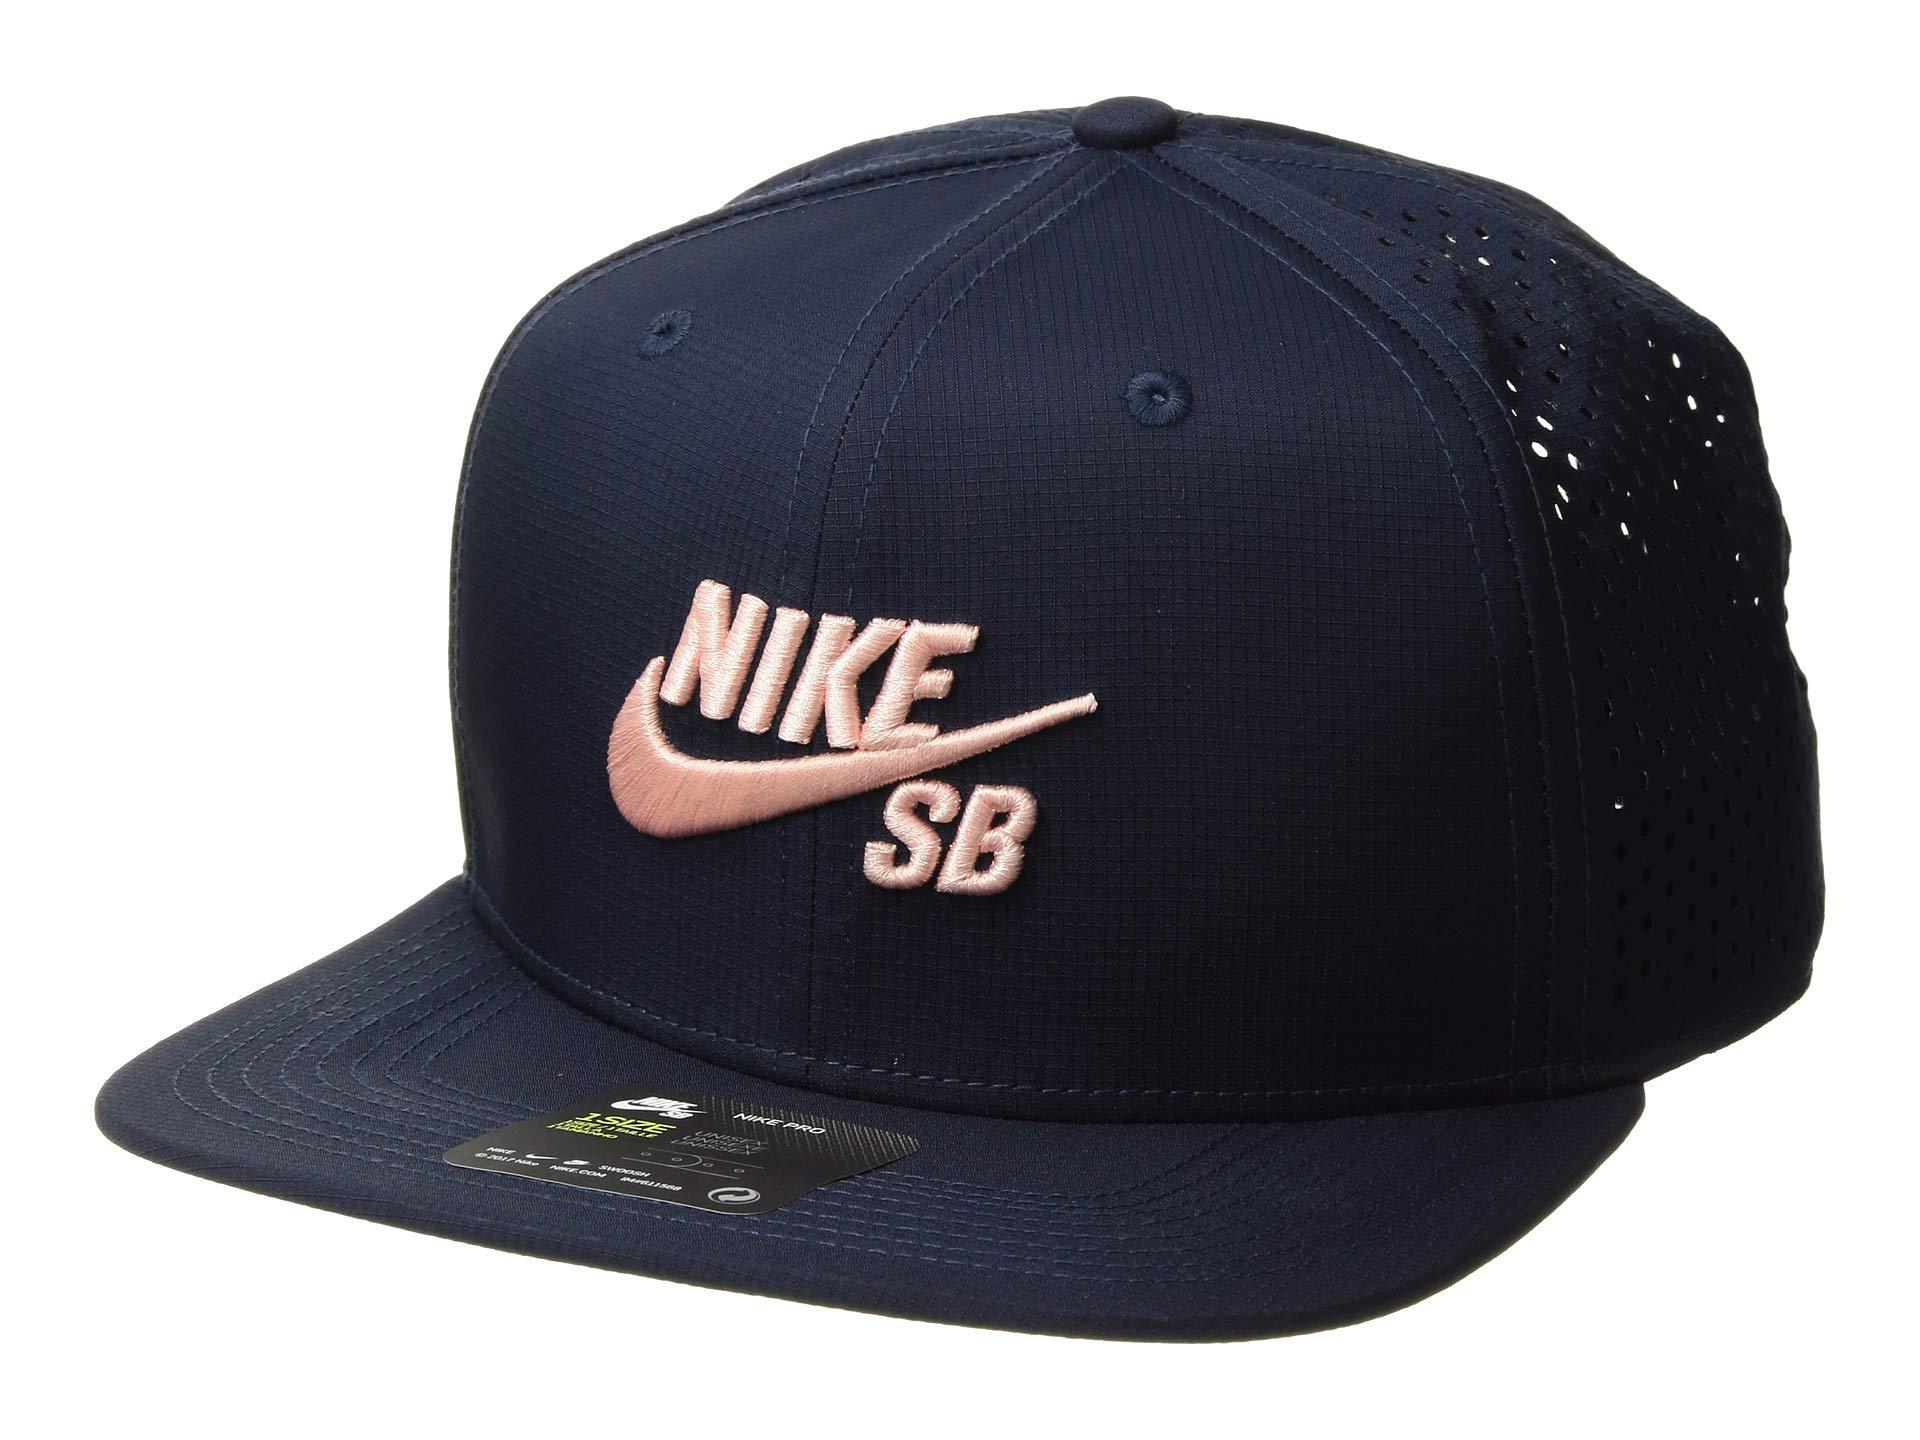 wholesale dealer ede63 1c58a Lyst - Nike Performance Trucker Hat (black black black white) Caps ...